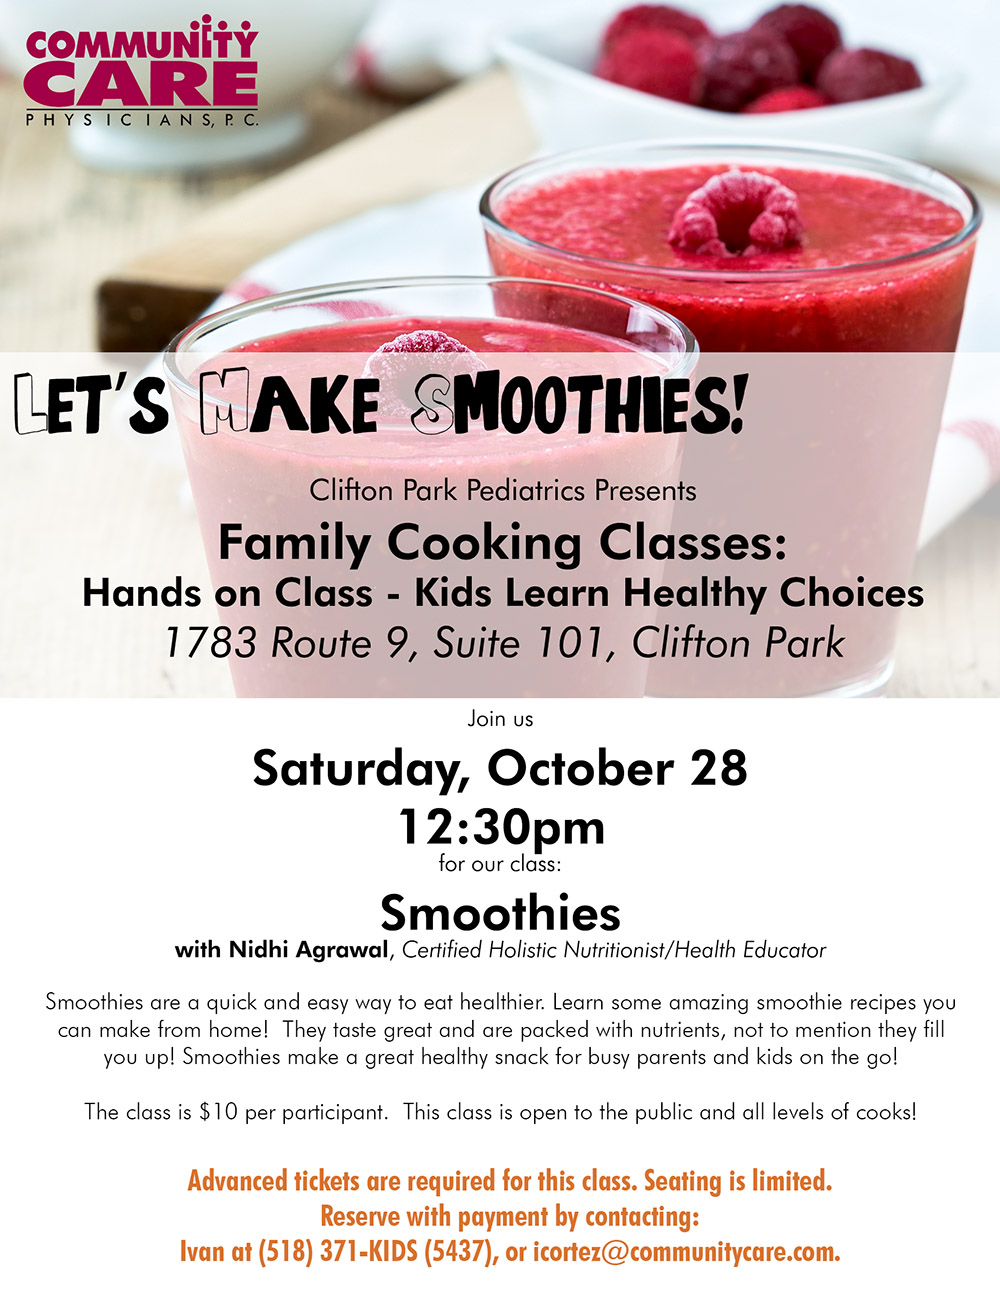 Clifton Park Pediatrics presents - Family Cooking Classes: Smoothies